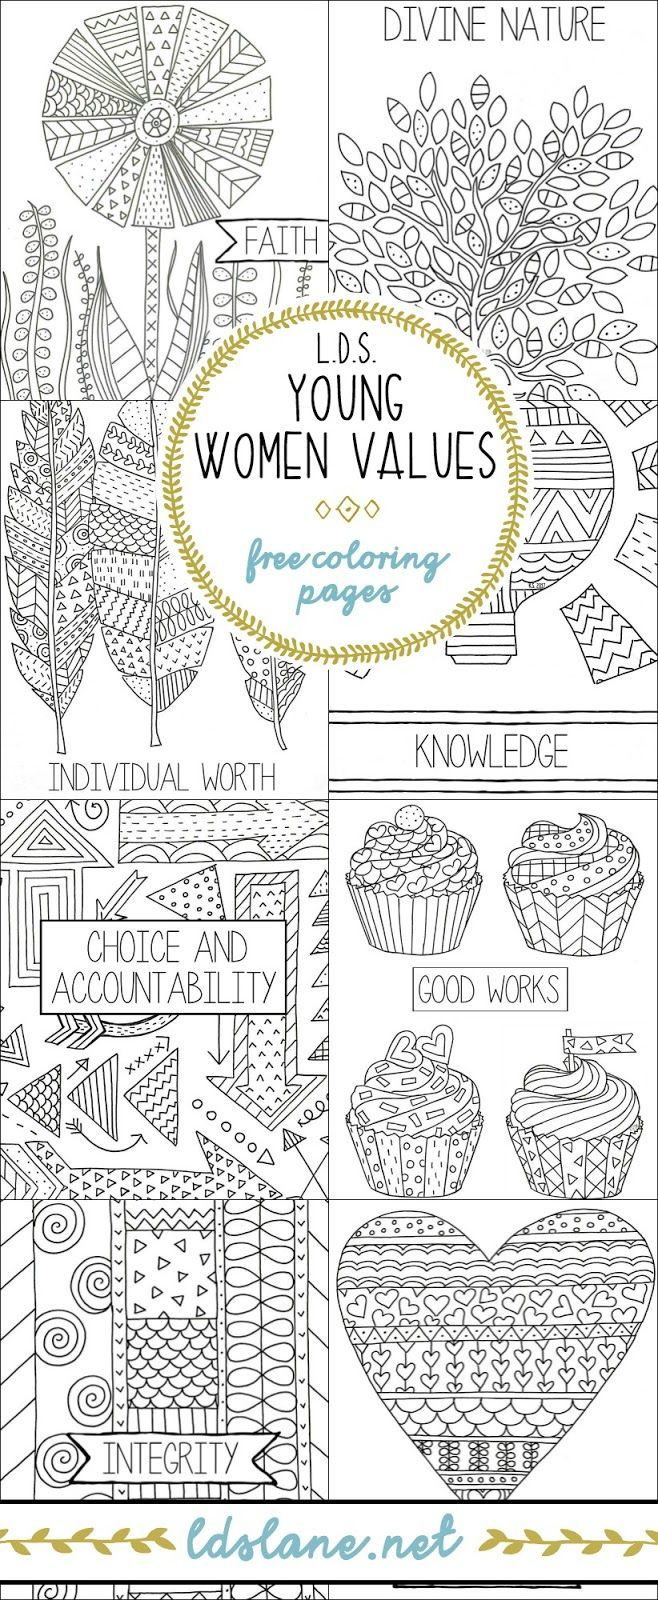 LDS Young Women Values Coloring Pages - ldslane.net | YW Activity ...